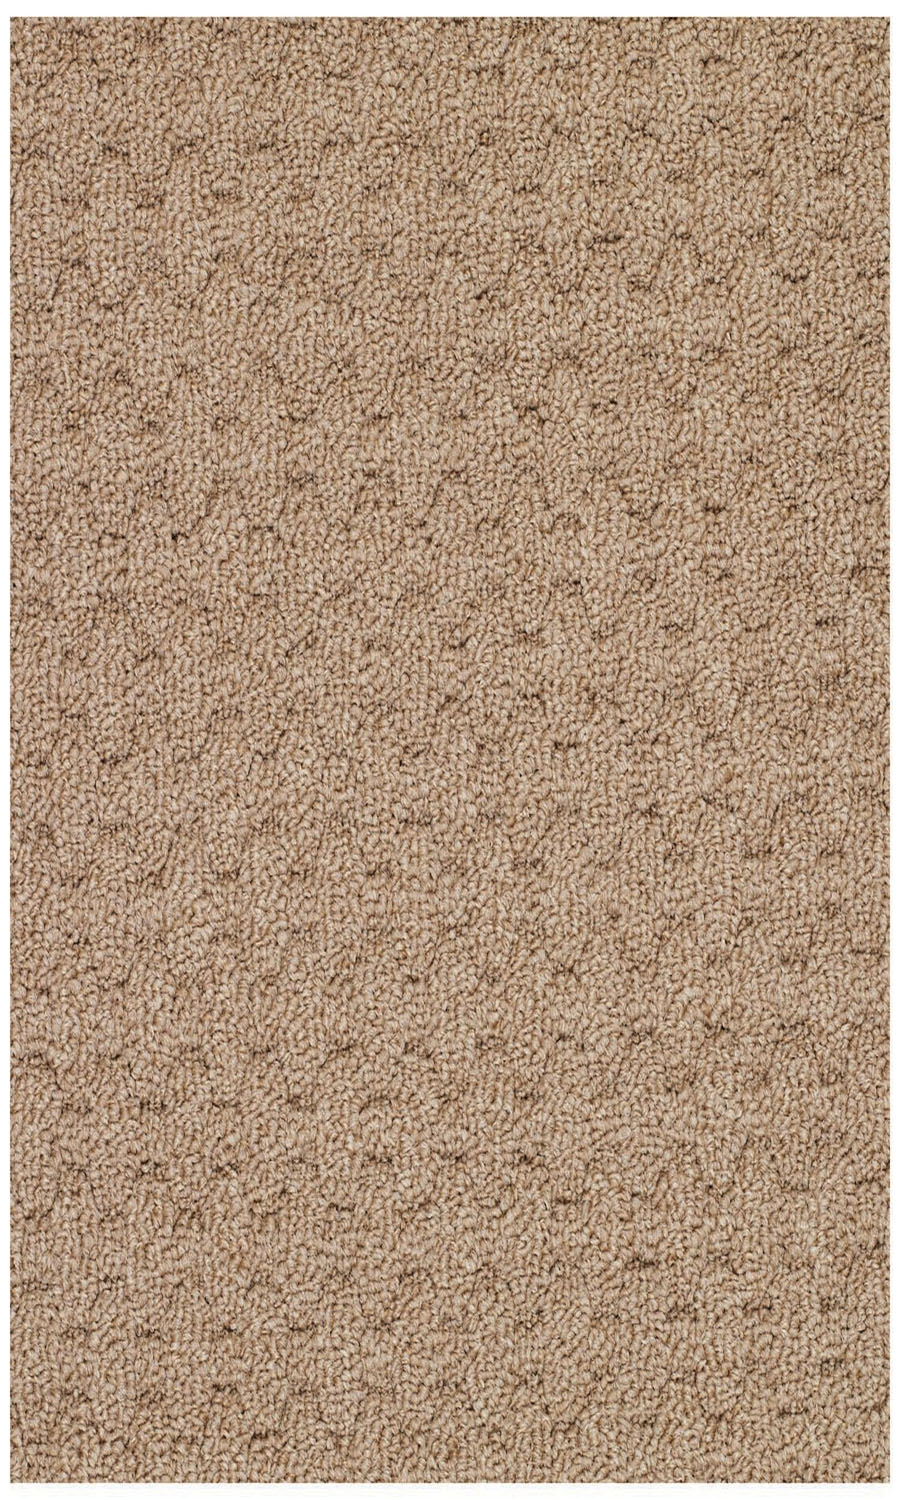 Capel Shoal Grassy Mountain 1999 000 Rug